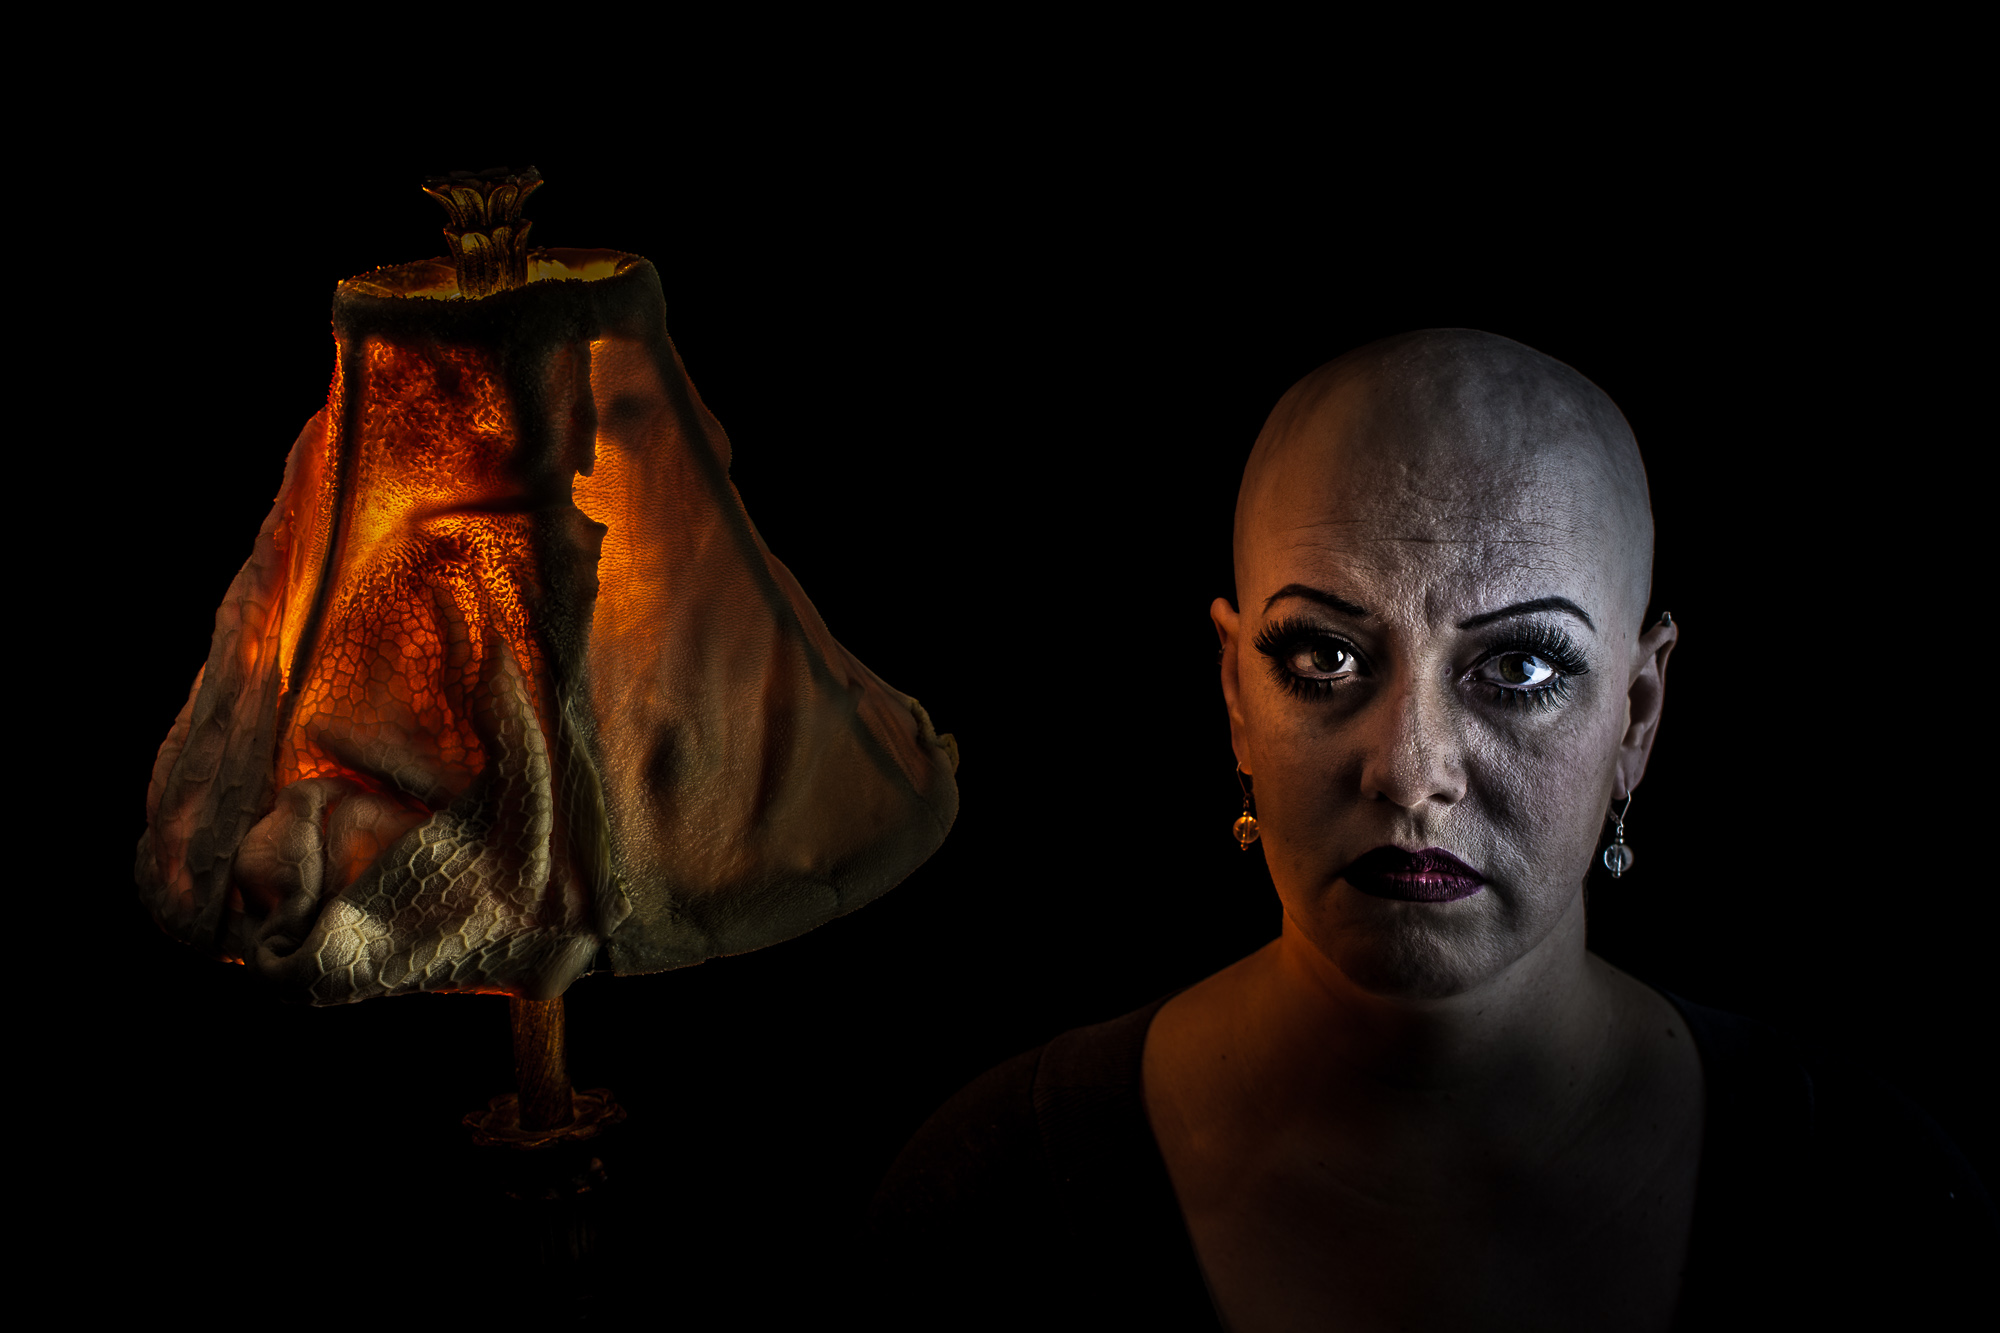 neal-auch-horror-portraits-of-bald-woman-2.jpg